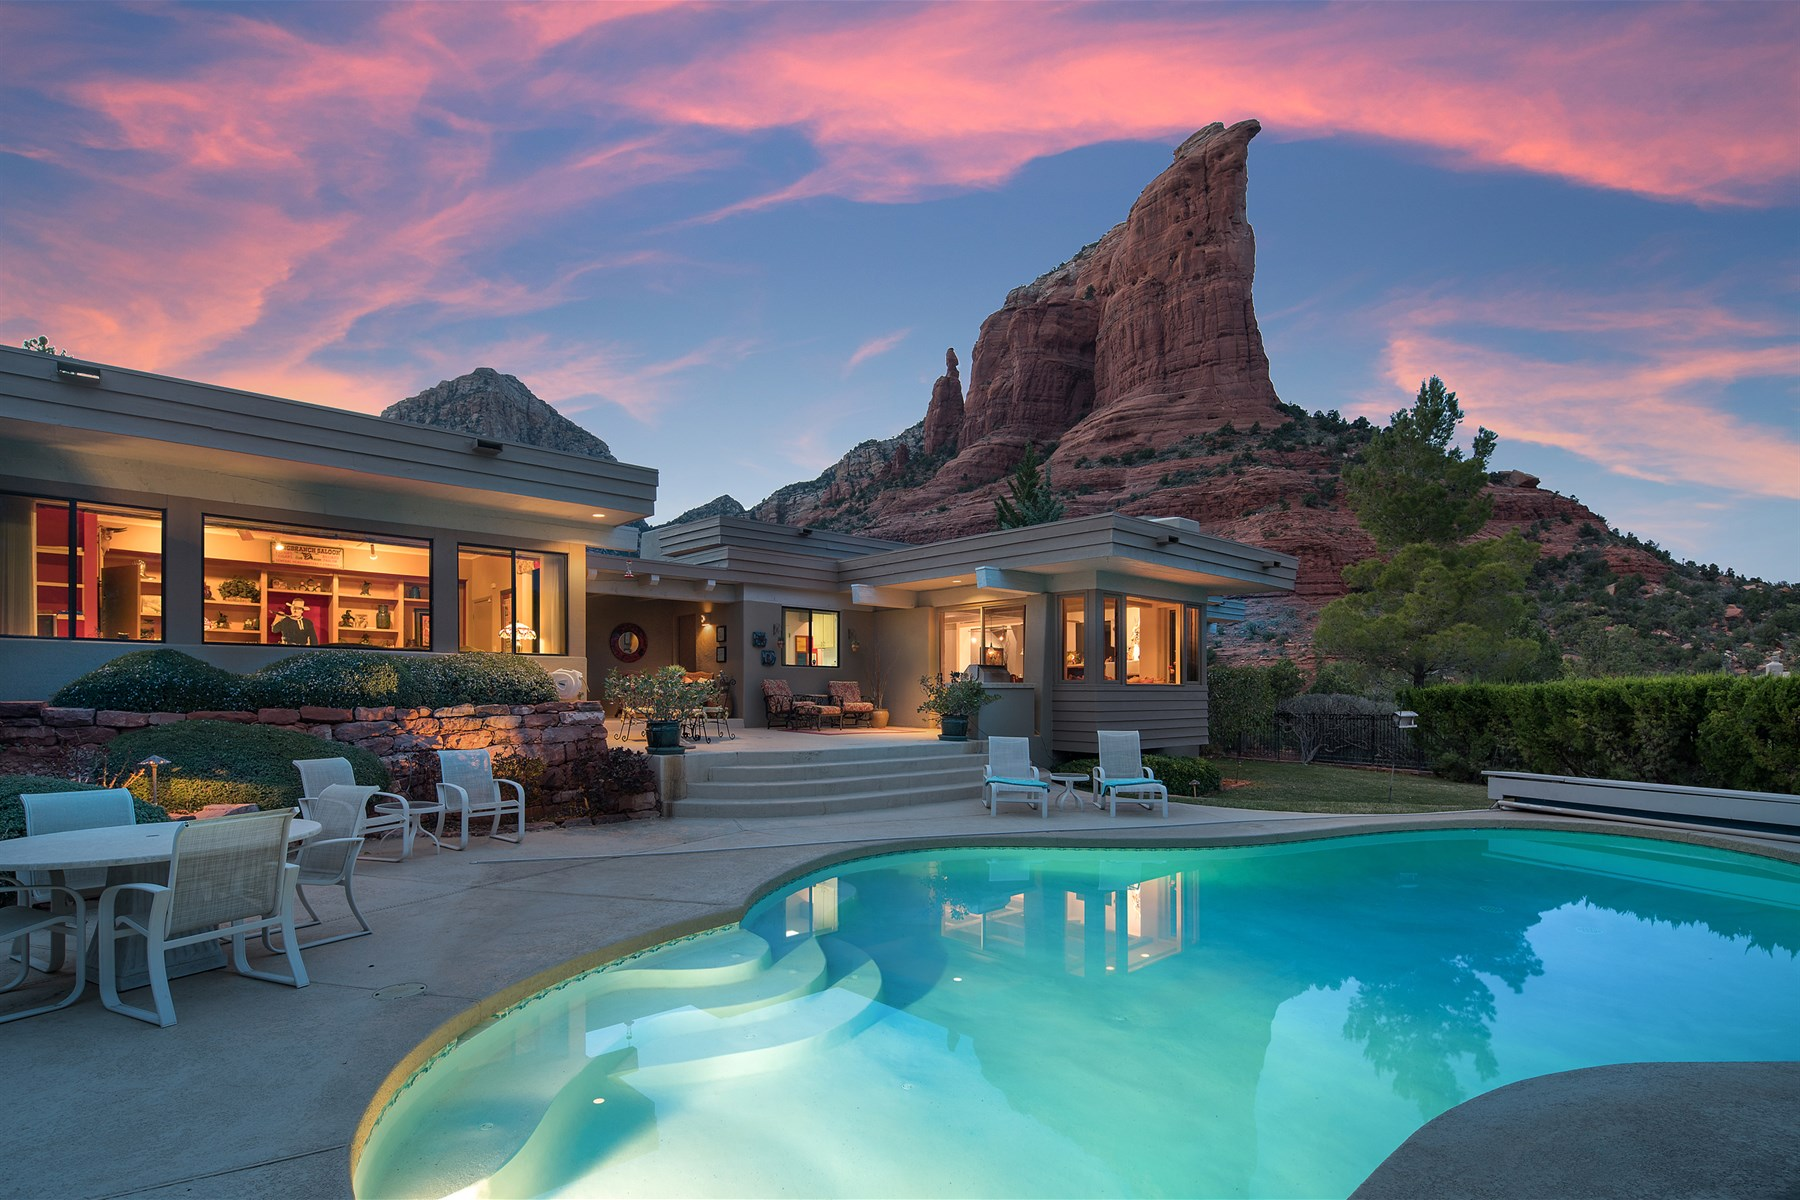 Casa Unifamiliar por un Venta en Single-level Frank Lloyd Wright architecturally inspired home 250 Shadow Rock Dr Sedona, Arizona, 86336 Estados Unidos